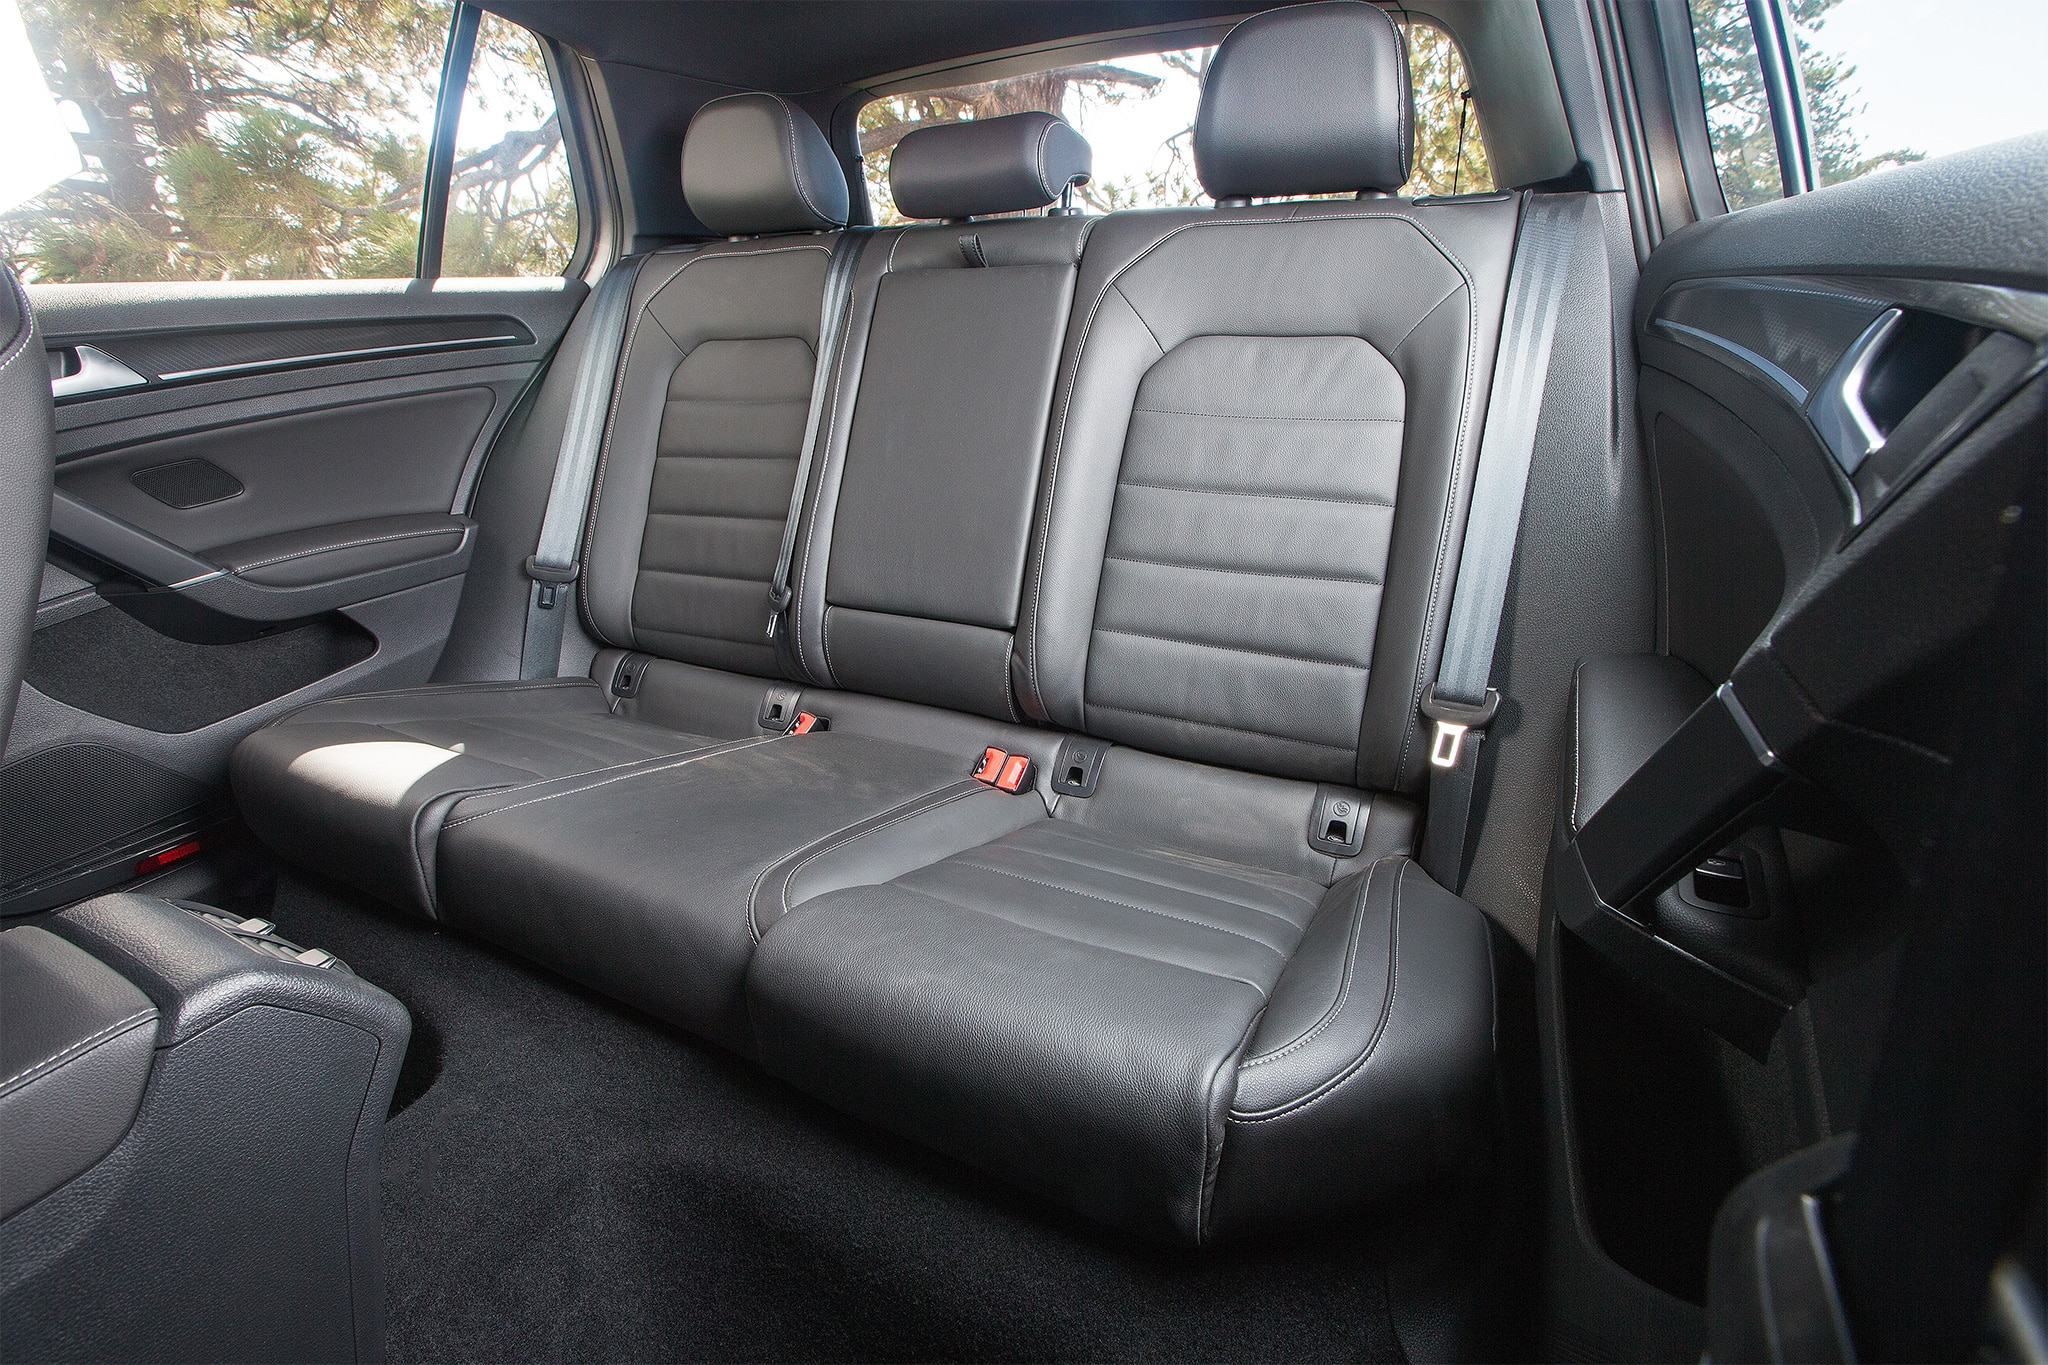 2016 Volkswagen Golf R rear seat